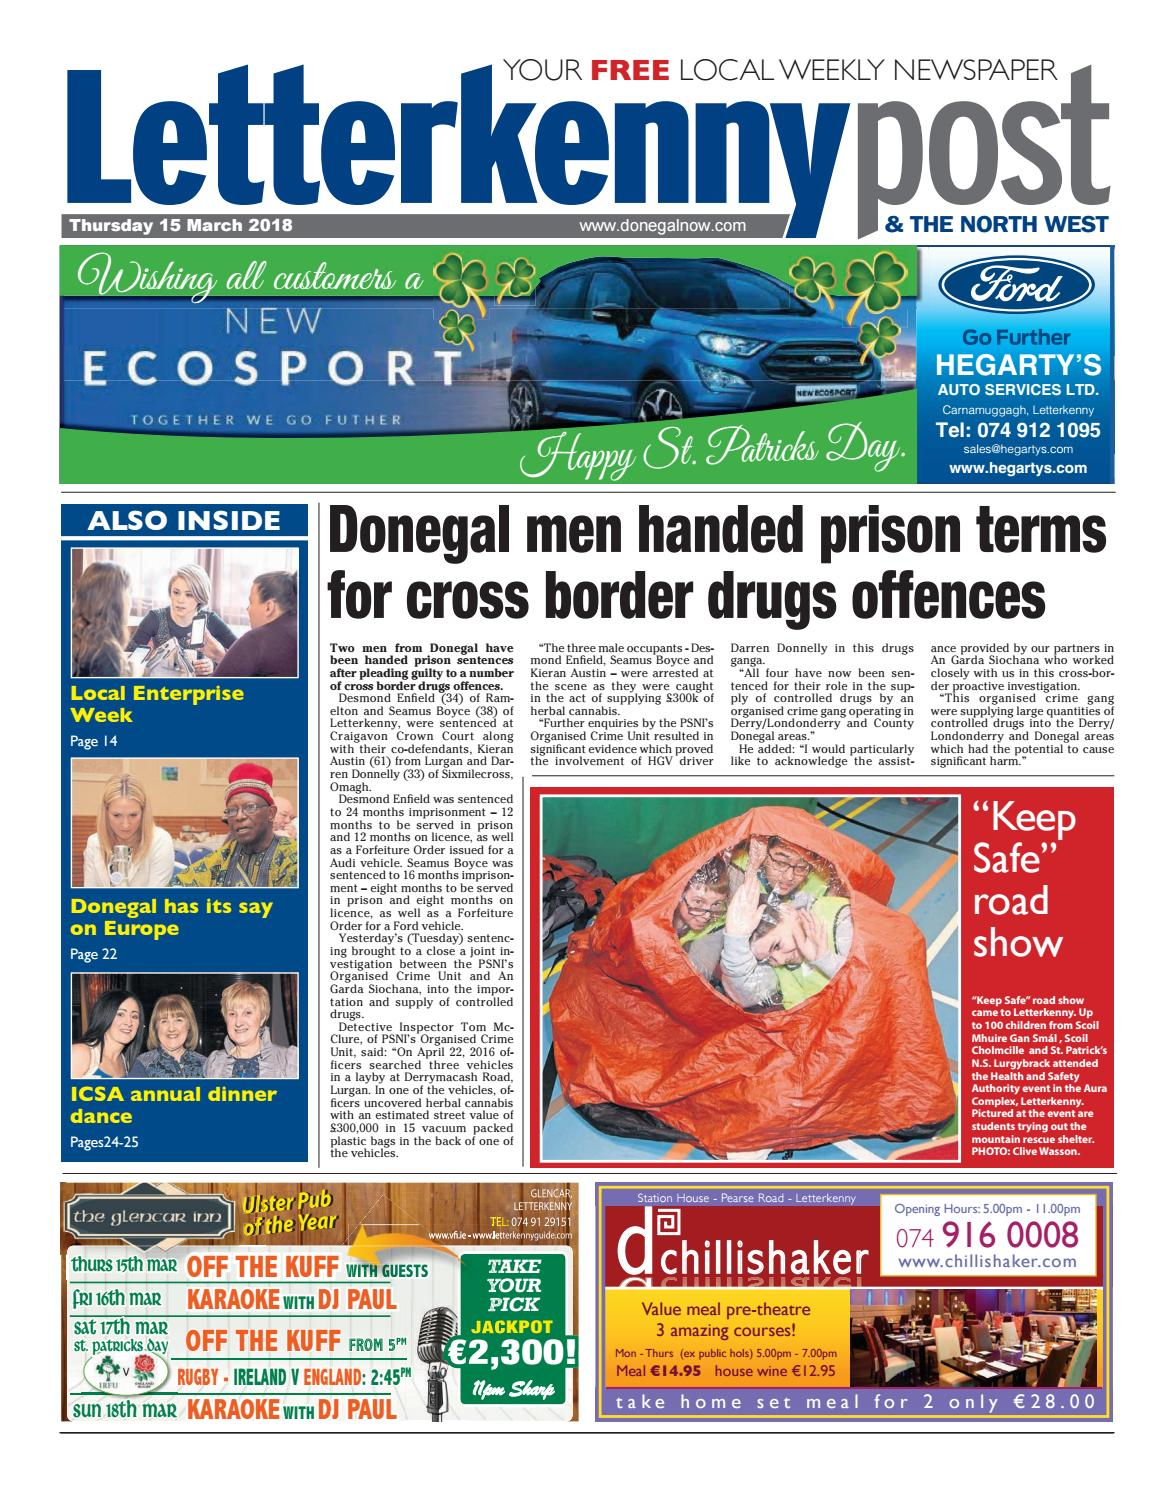 ab43043db47a0 Letterkenny post 15 03 2018 by River Media Newspapers - issuu